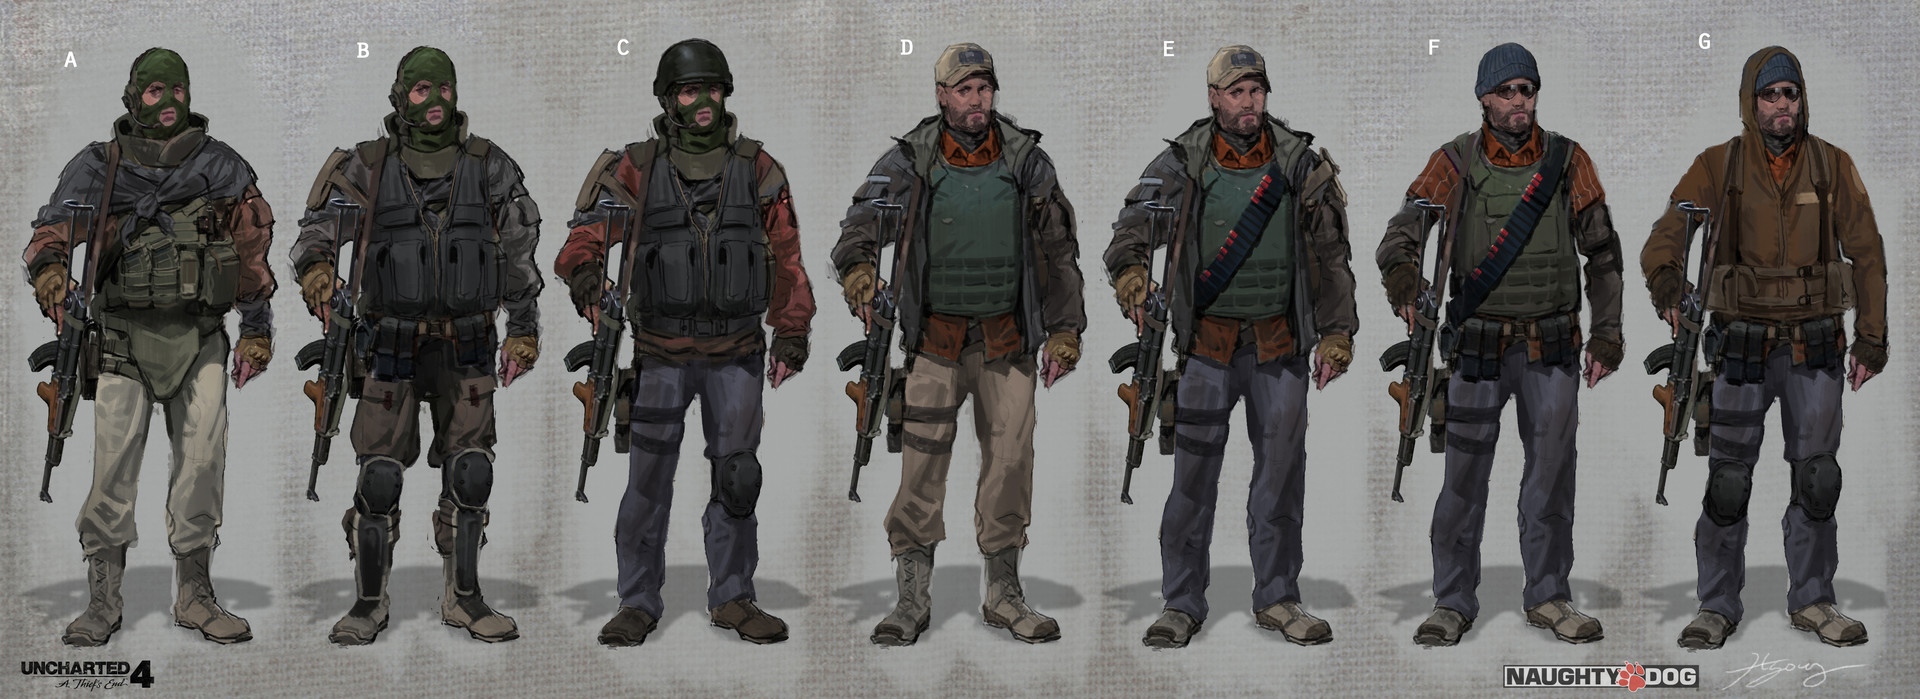 Hyoung nam enemy soldier 05